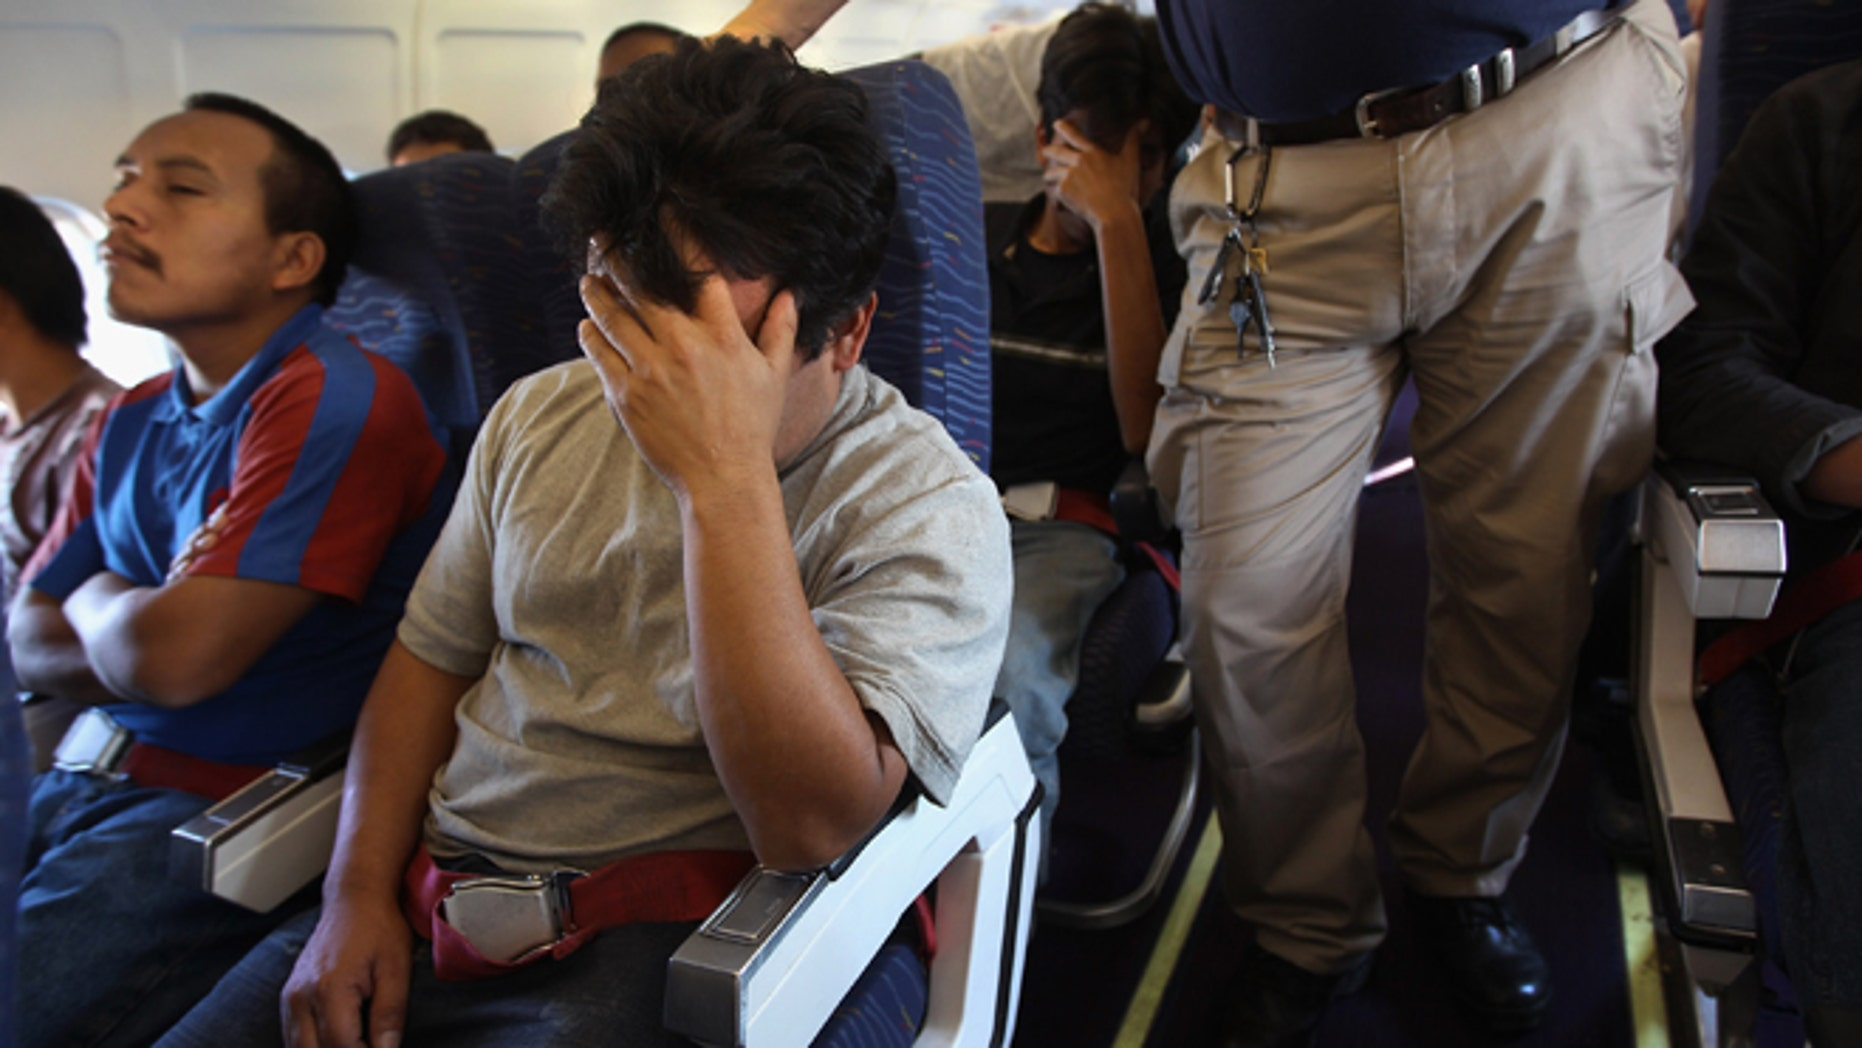 """IN FLIGHT - JUNE 24:  Undocumented Guatemalan immigrants are supervised by guards while on a deportation flight from Mesa, Arizona on June 24, 2011 in flight to Guatemala City, Guatemala. The U.S. Immigration and Customs Enforcement agency, ICE, repatriates thousands of undocumented Guatemalans monthly, many of whom are caught in the controversial """"Secure Communities"""" data-sharing program which puts local police on the frontlines of national immigration enforcement. ICE recently announced a set of adjustments to the federal program after many local communities and some states, including New York, insisted on opting out, saying immigrants were being deported for minor offenses such as traffic violations. Guatemala ranks only second to Mexico in the number of illegal immigrants deported from the United States.  (Photo by John Moore/Getty Images)"""